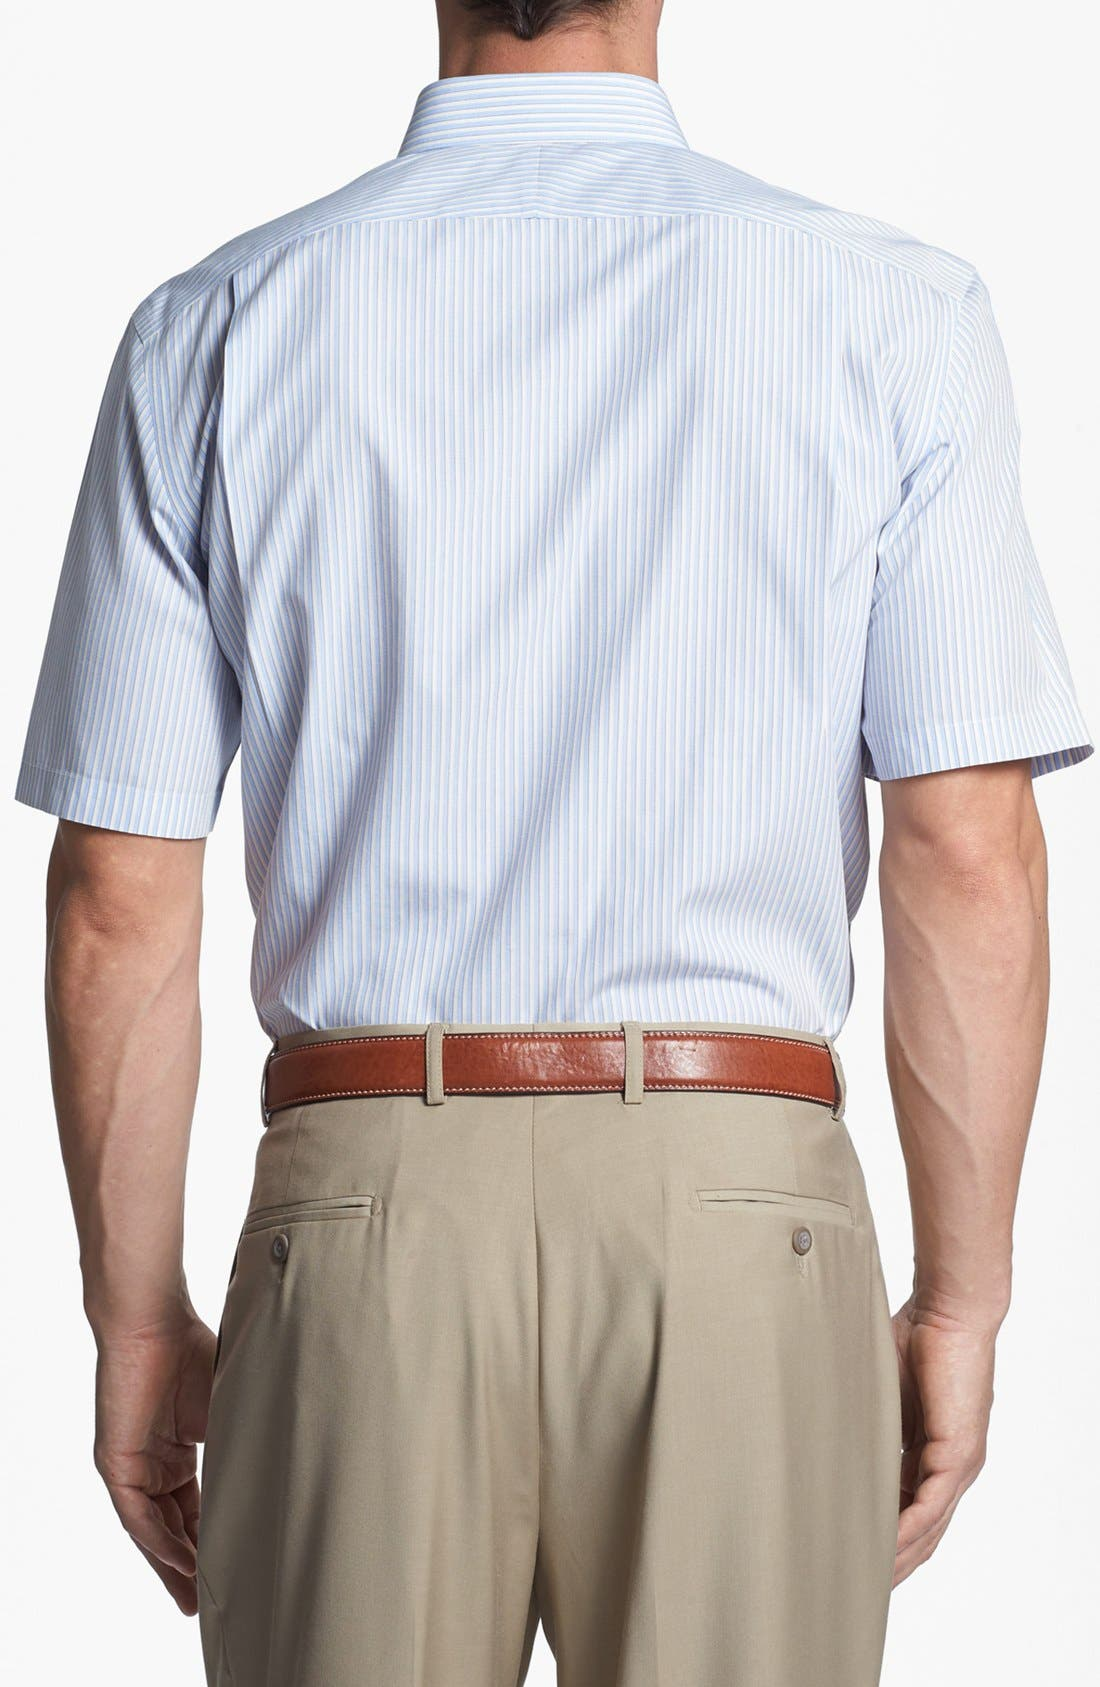 Alternate Image 4  - Nordstrom Smartcare™ Wrinkle Free Traditional Fit Short Sleeve Dress Shirt (Online Only)